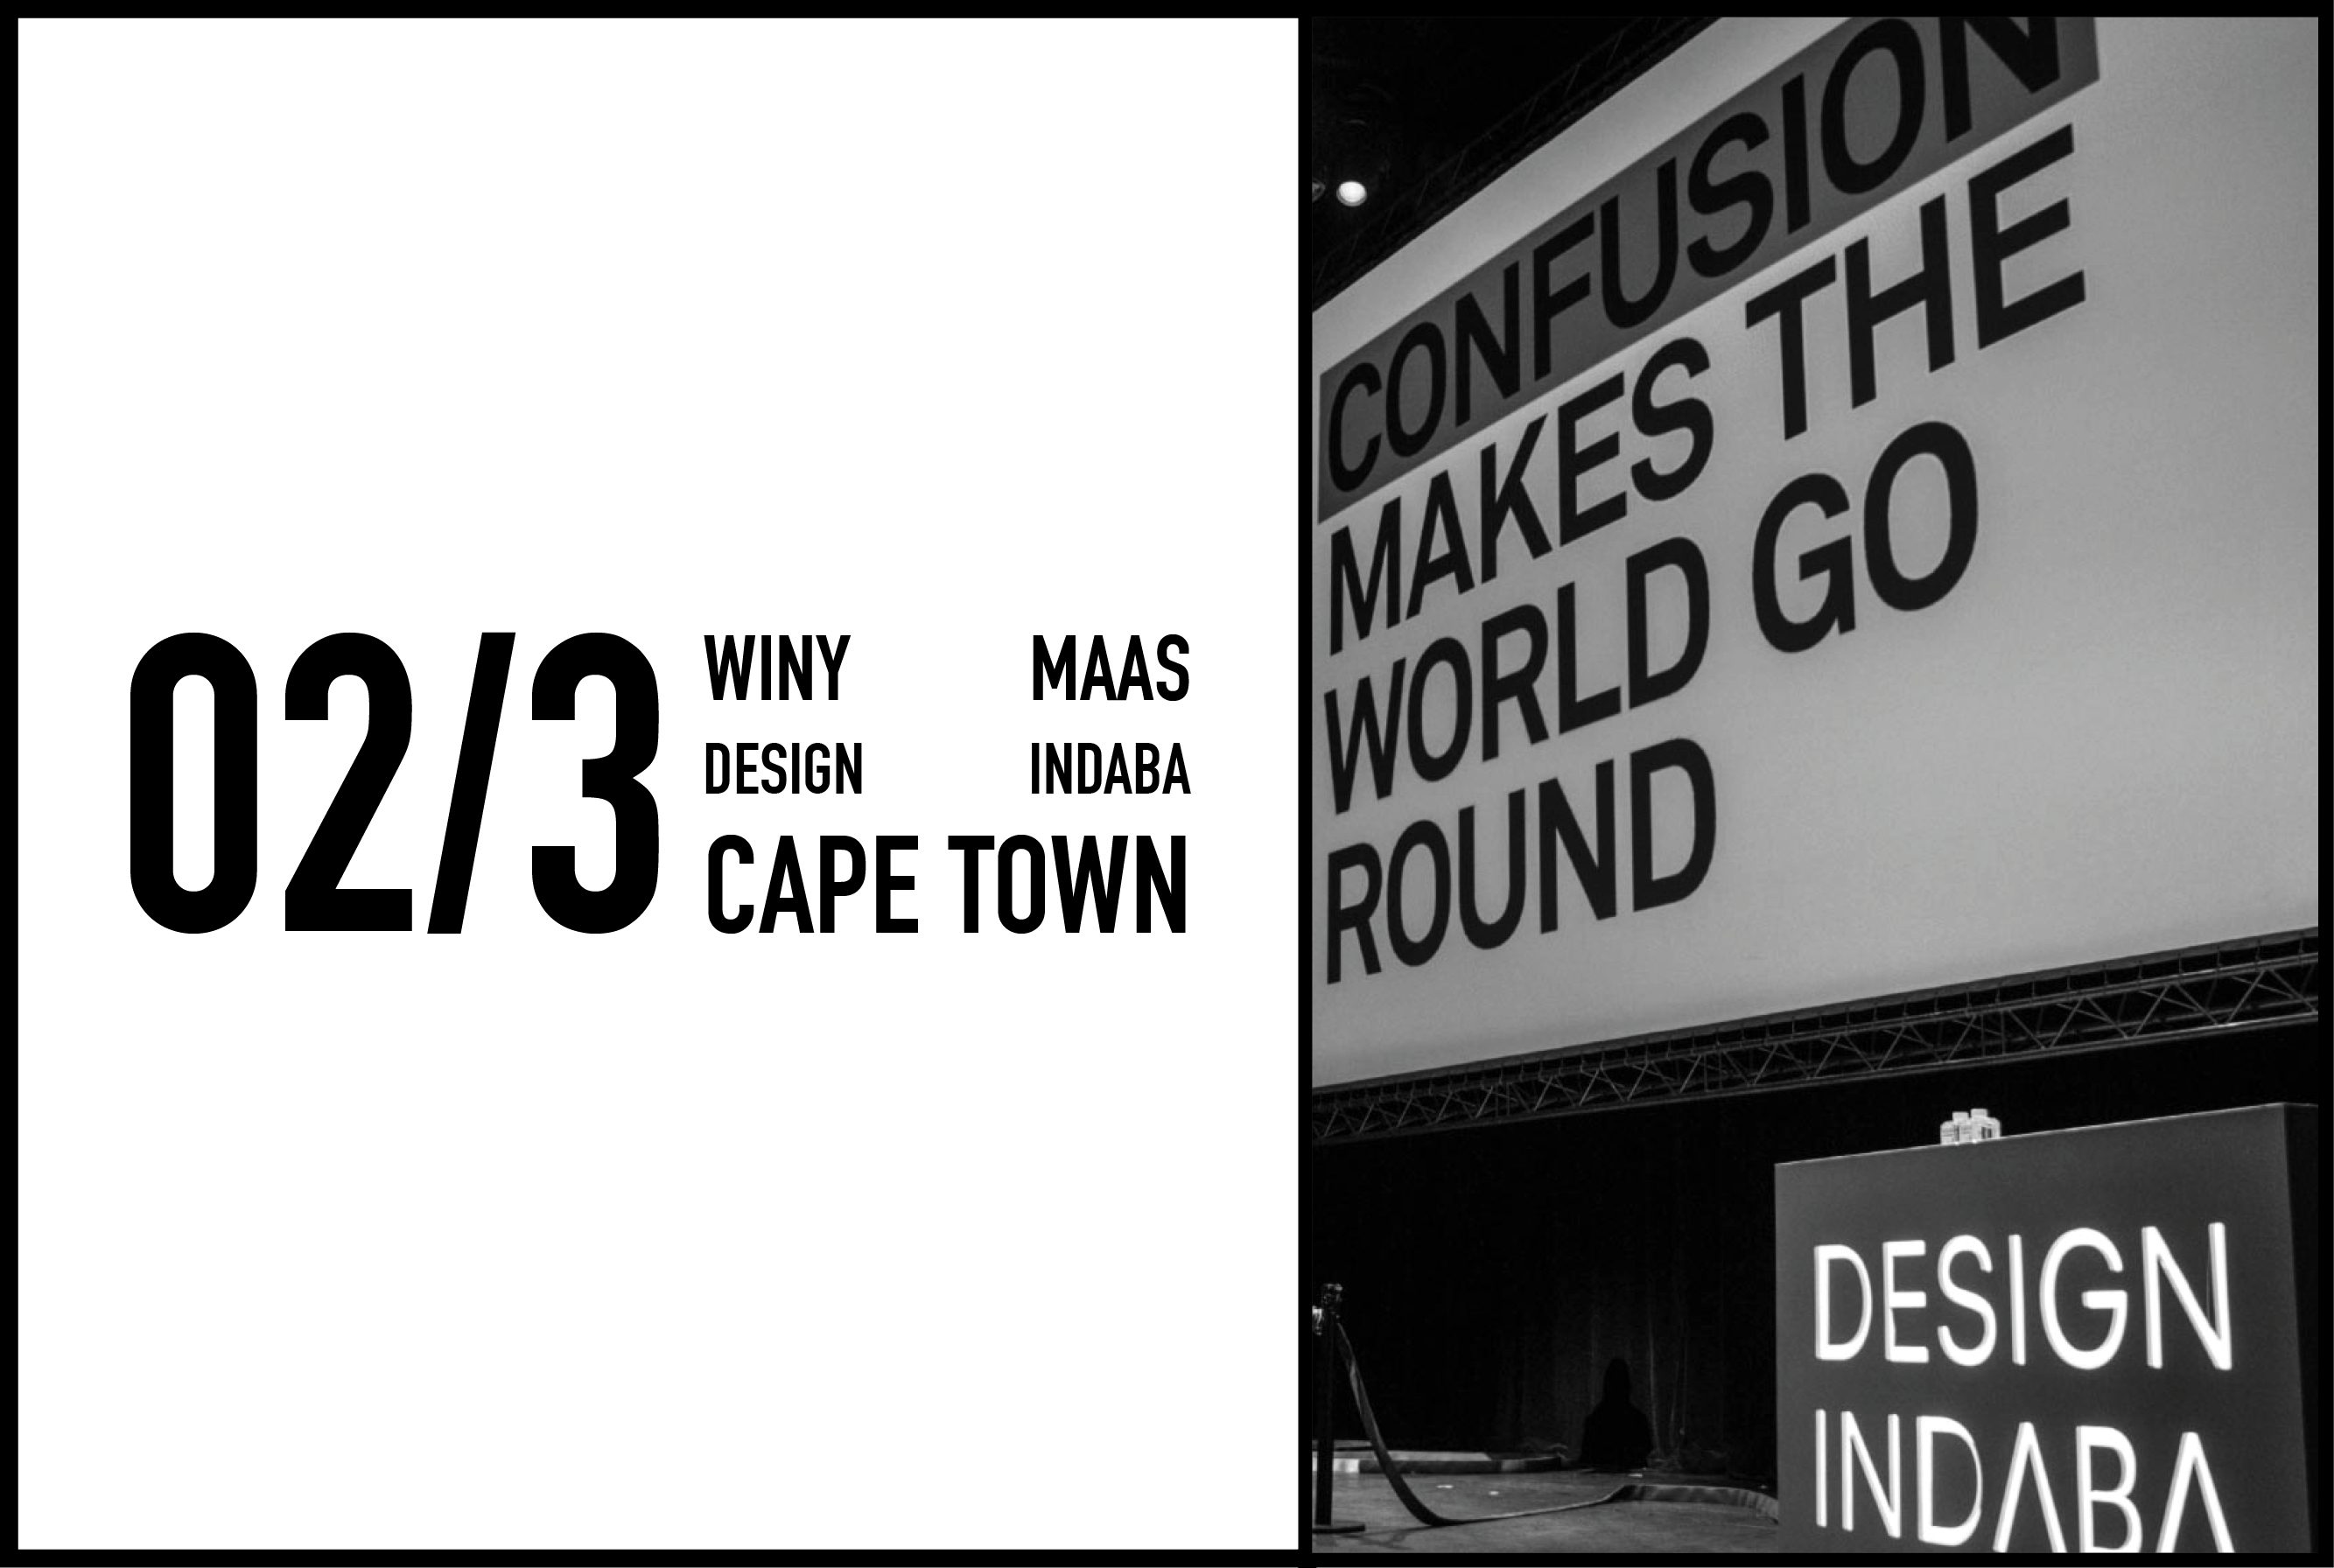 Winy Maas to speak at the Design Indaba Conference, 2 March 2017